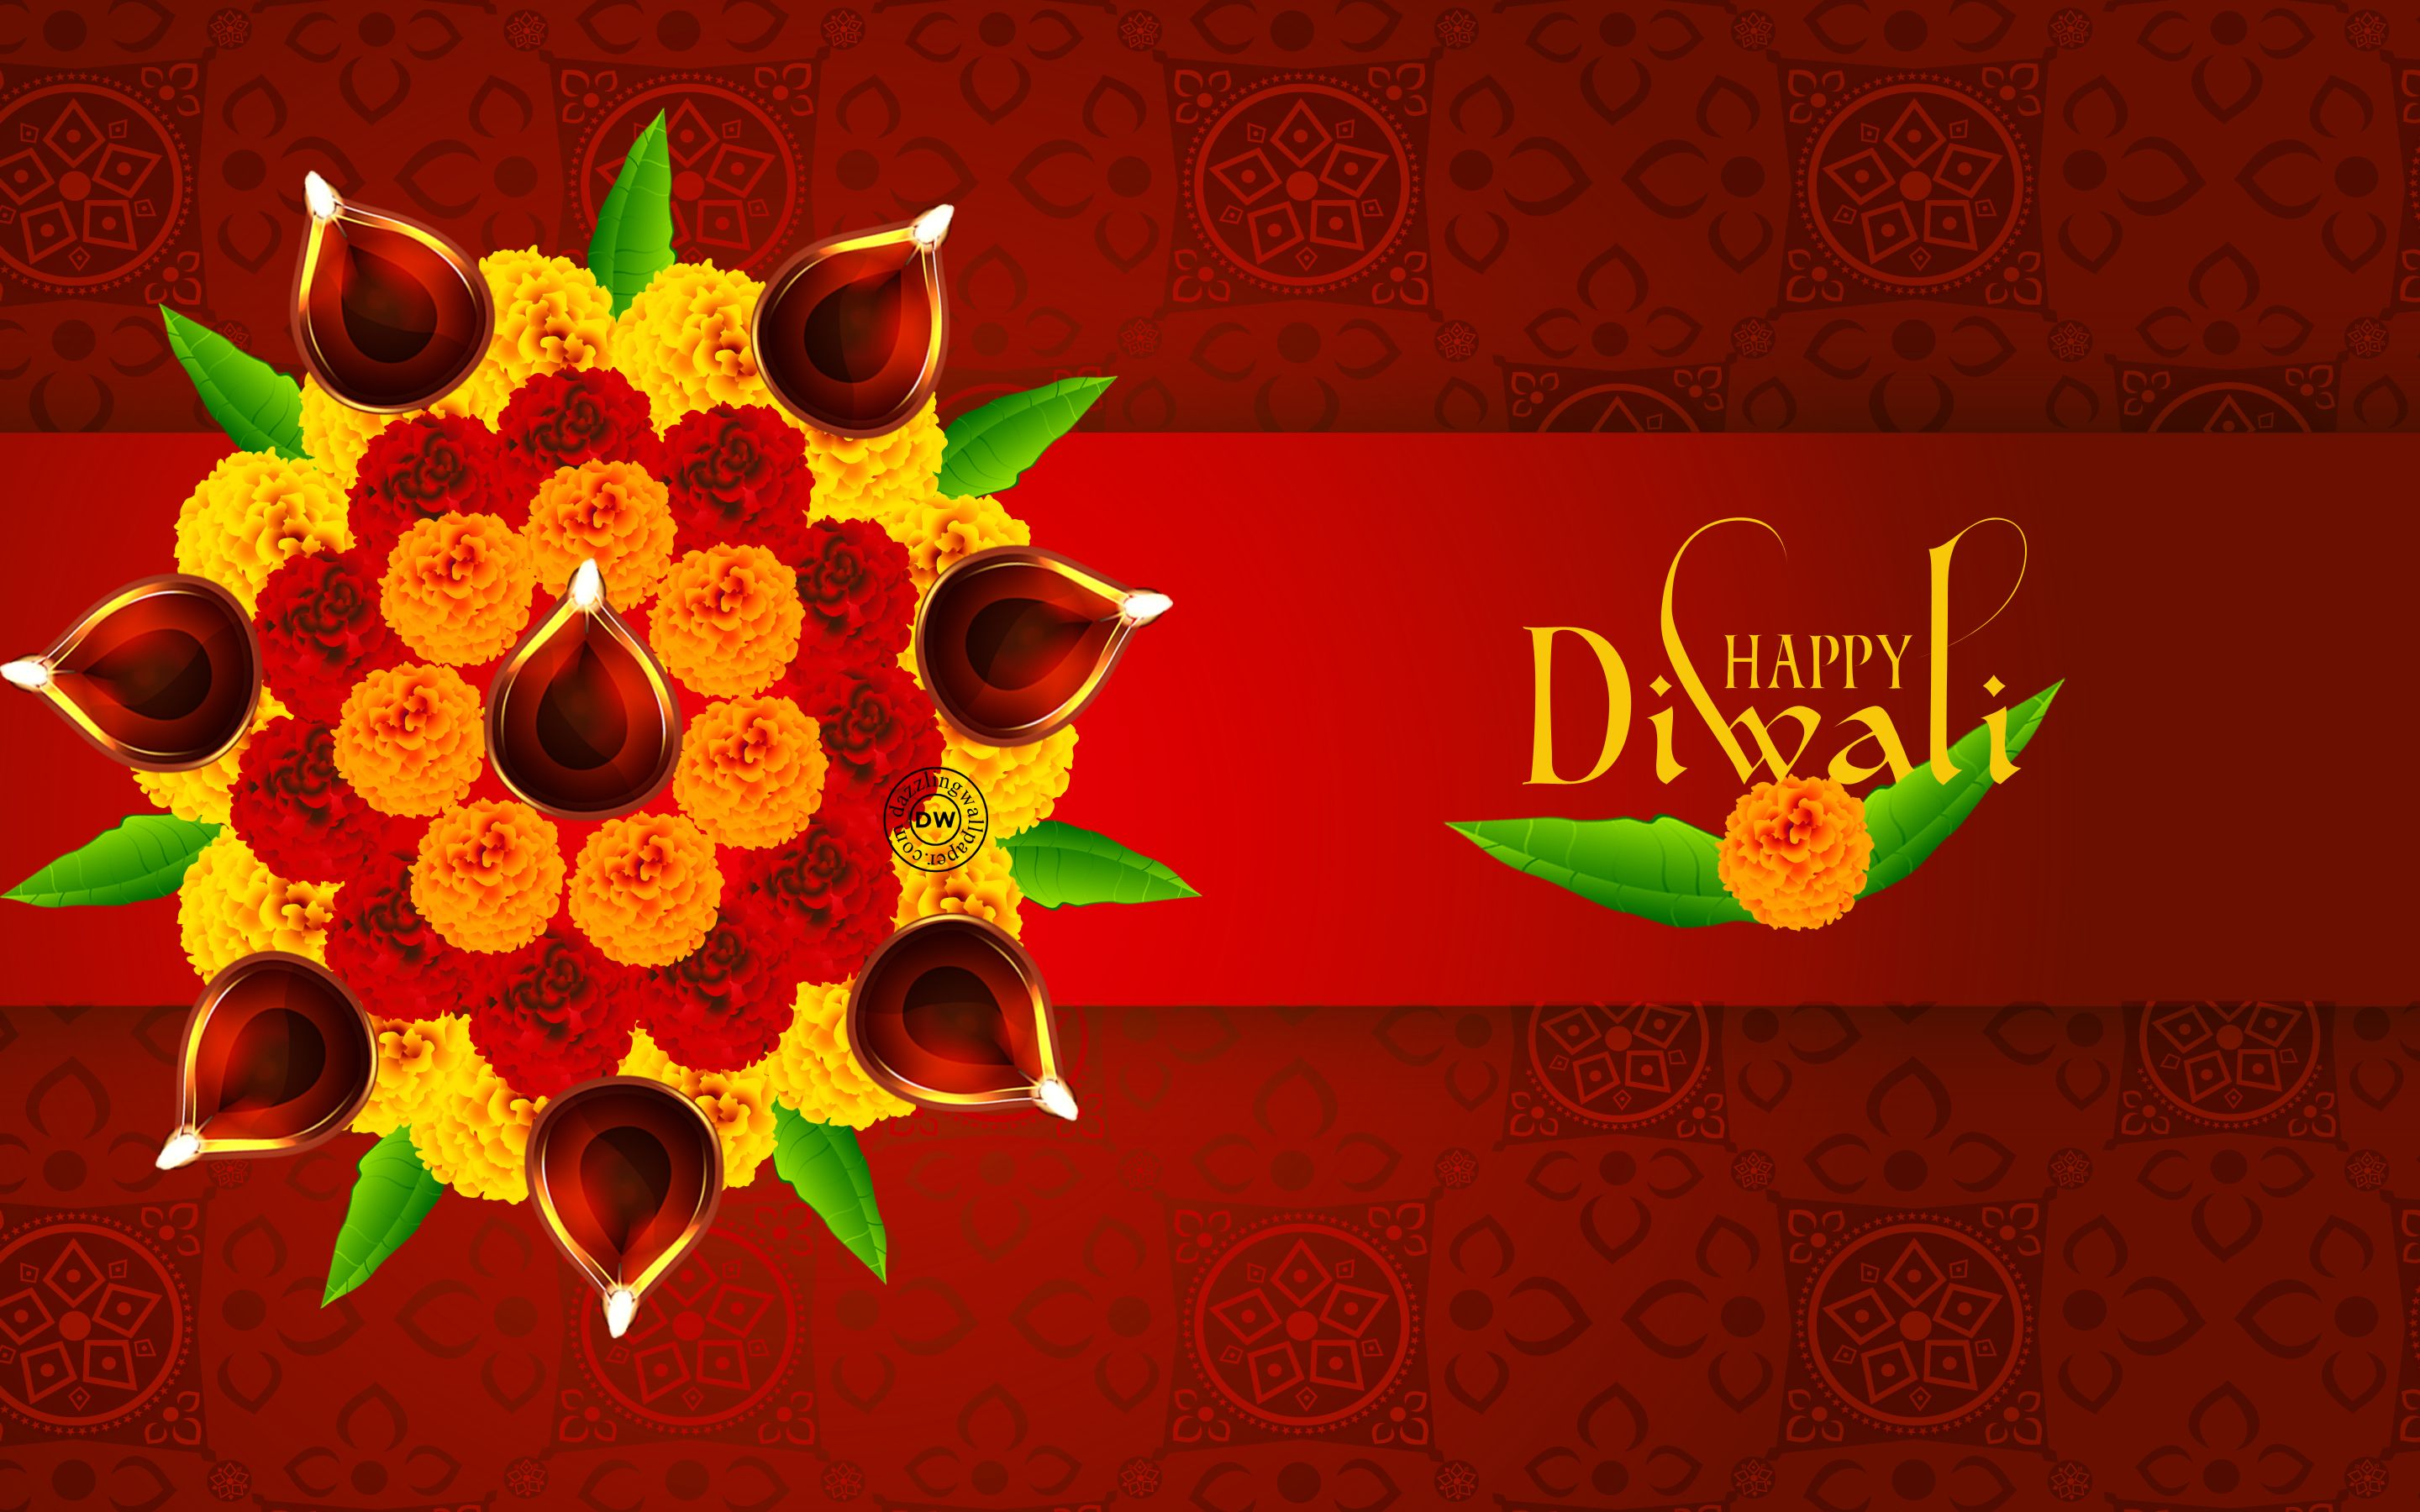 Happy diwali sms 2015 with images httpfestivalworldz 30 colorful diwali greeting card designs diwali is one of most famous hindu festivals celebrated with lamps crackers etc kristyandbryce Gallery